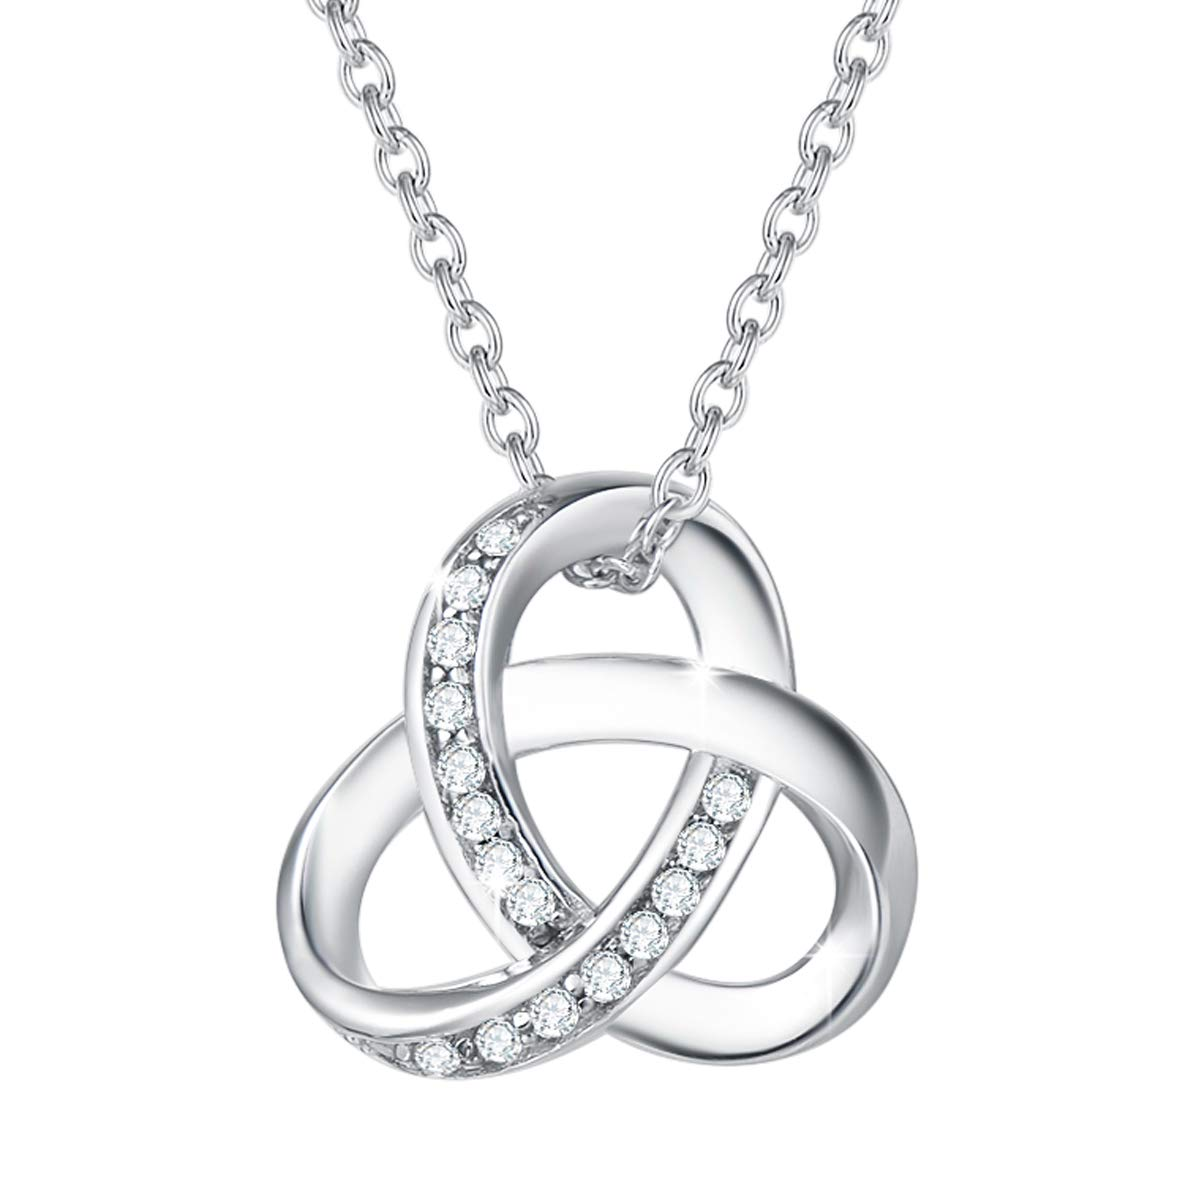 Agvana Infinity Necklace Mothers Day Gifts for Mom Grandma Sterling Silver CZ Forever Love Infinity Dainty Pendant Necklace Gold Plated Jewelry for Women Teen Girls Lover with Jewelry Box, 16+2 Inches